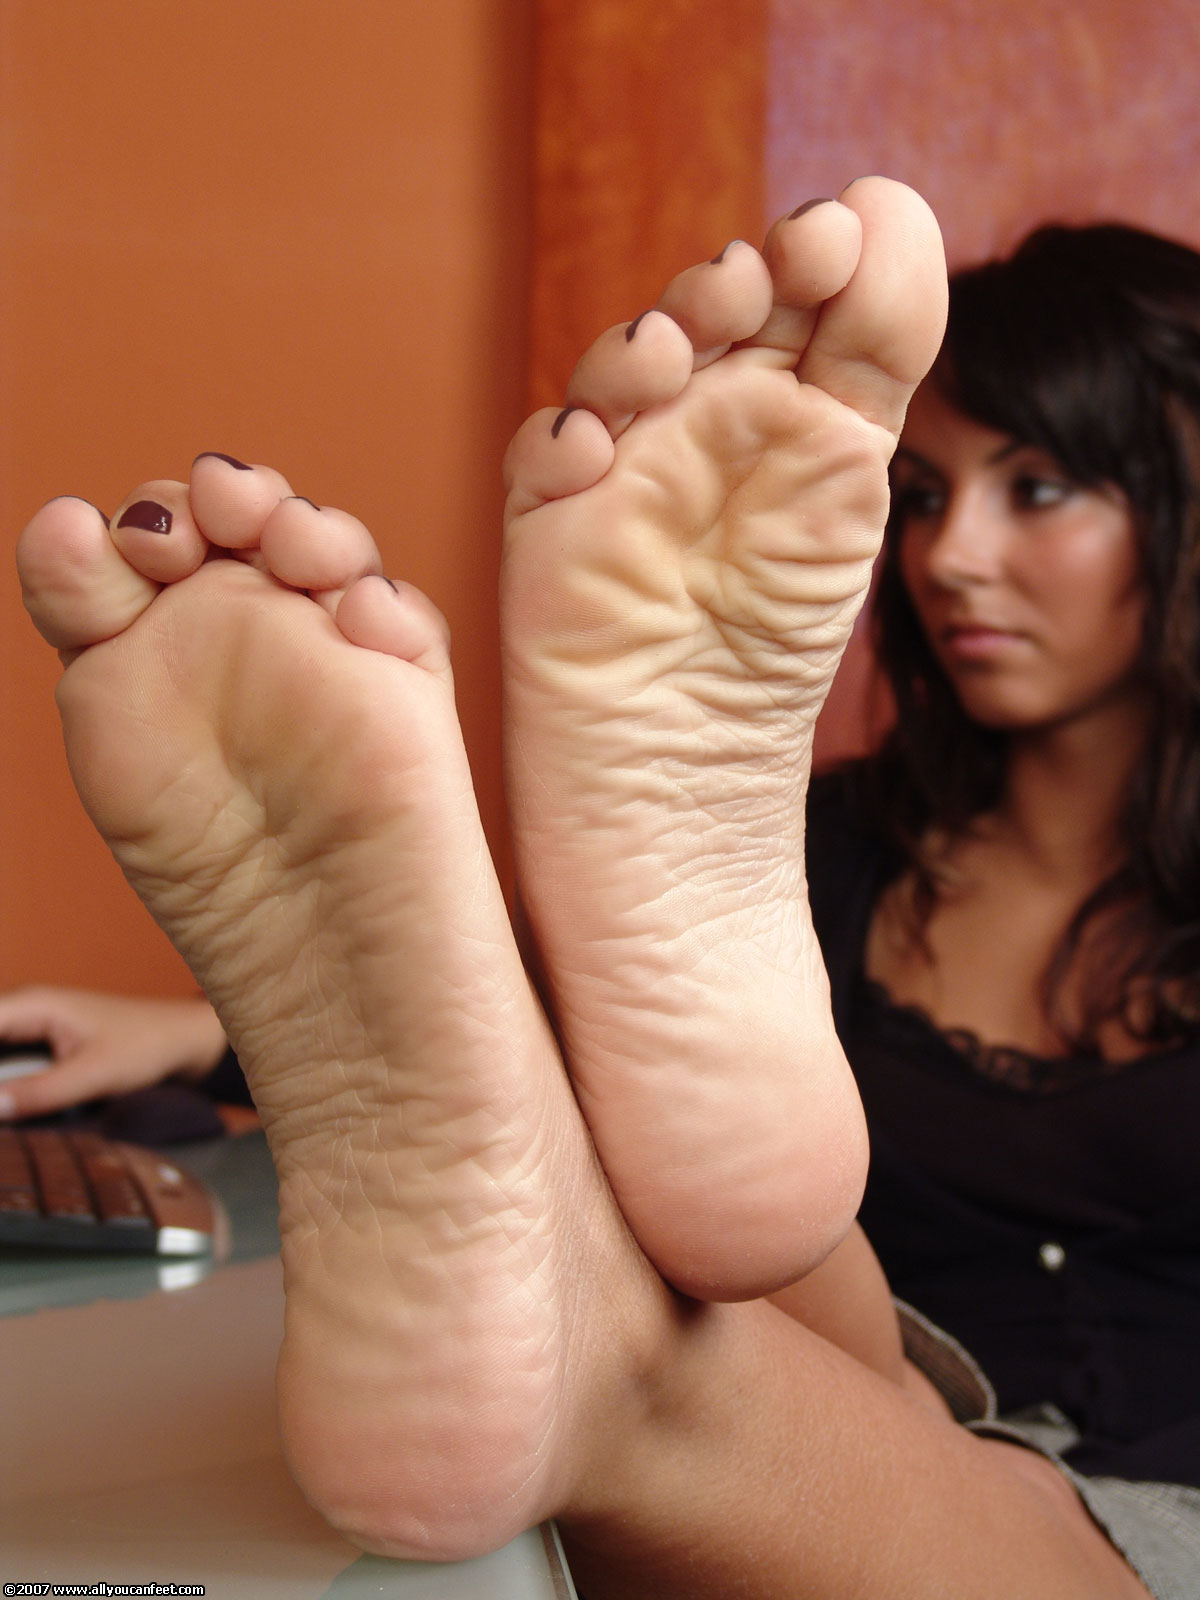 Candid smooth college feet in flip flops in classroom 1